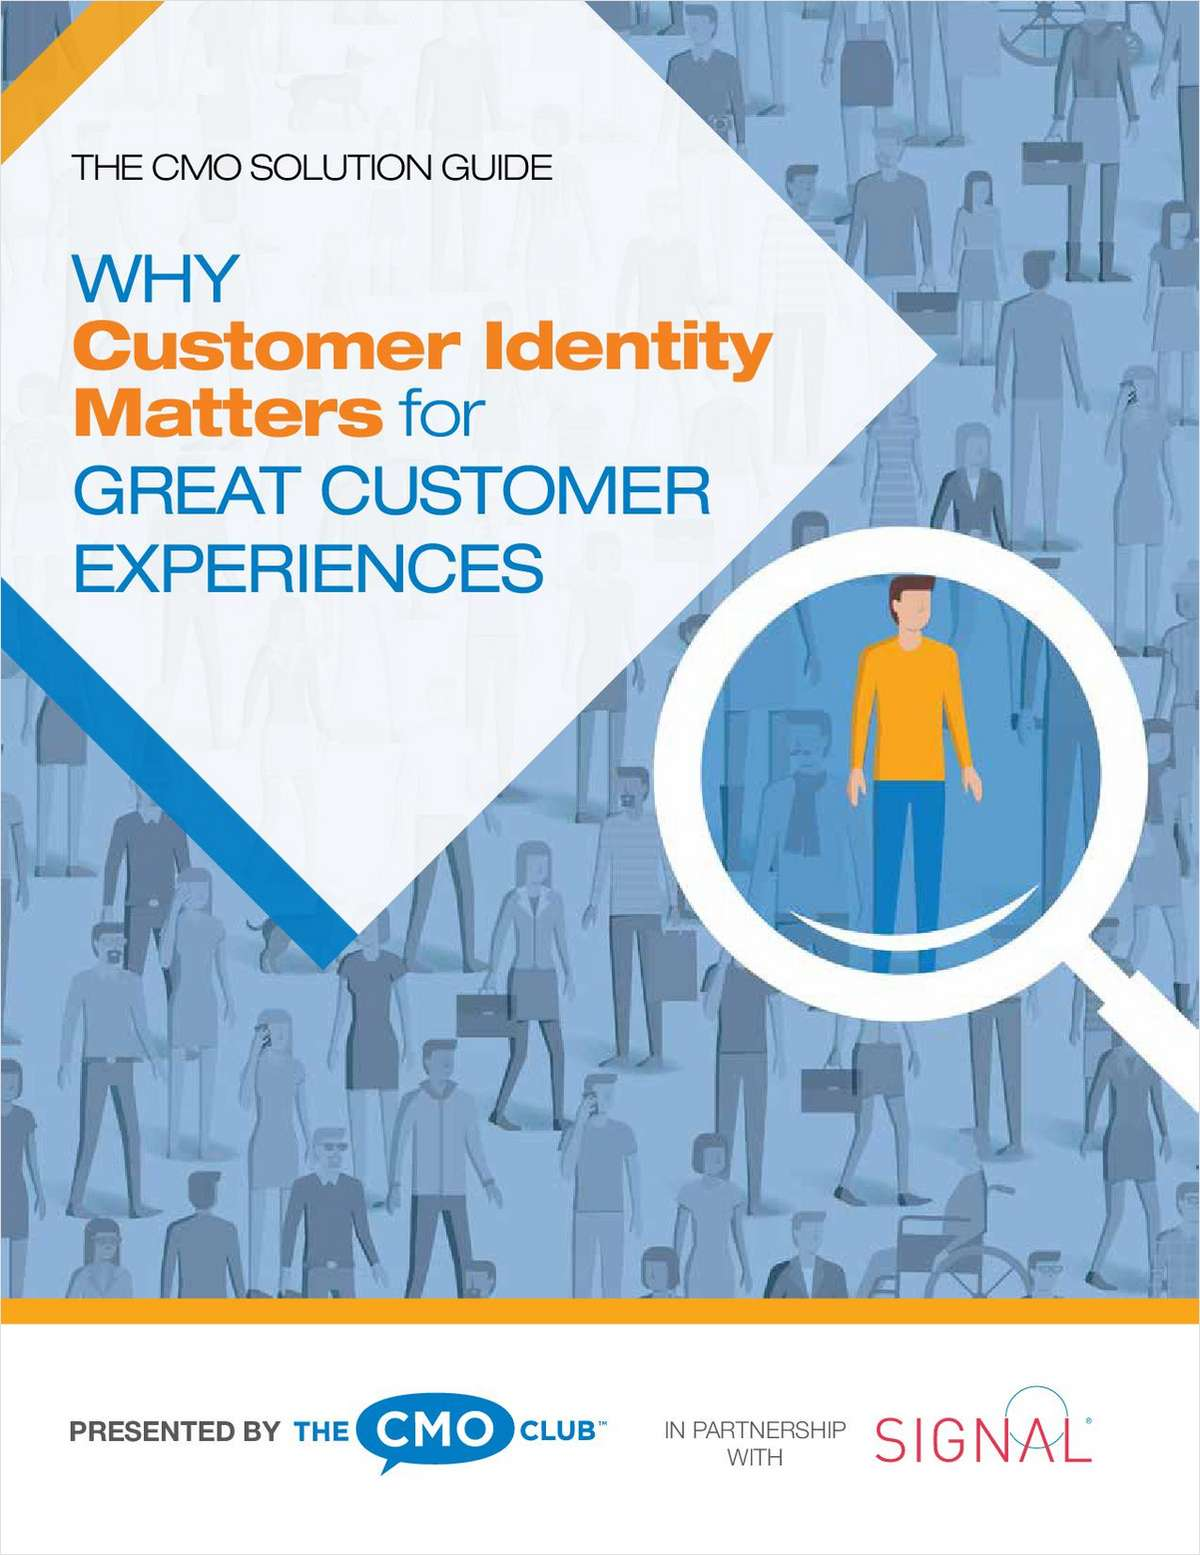 CMO Survey: Why Customer Identity Matters for Great Customer Experiences